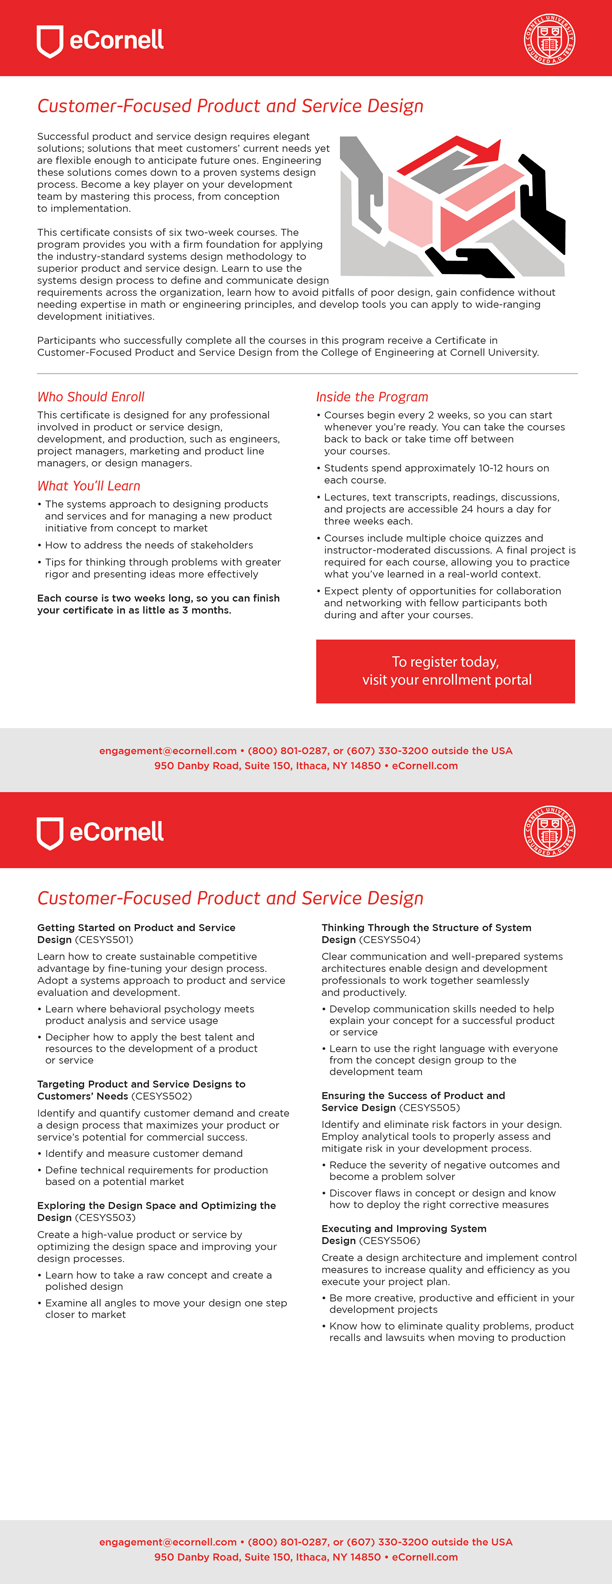 Customer-Focused Product and Service Design Flyer for Corporations